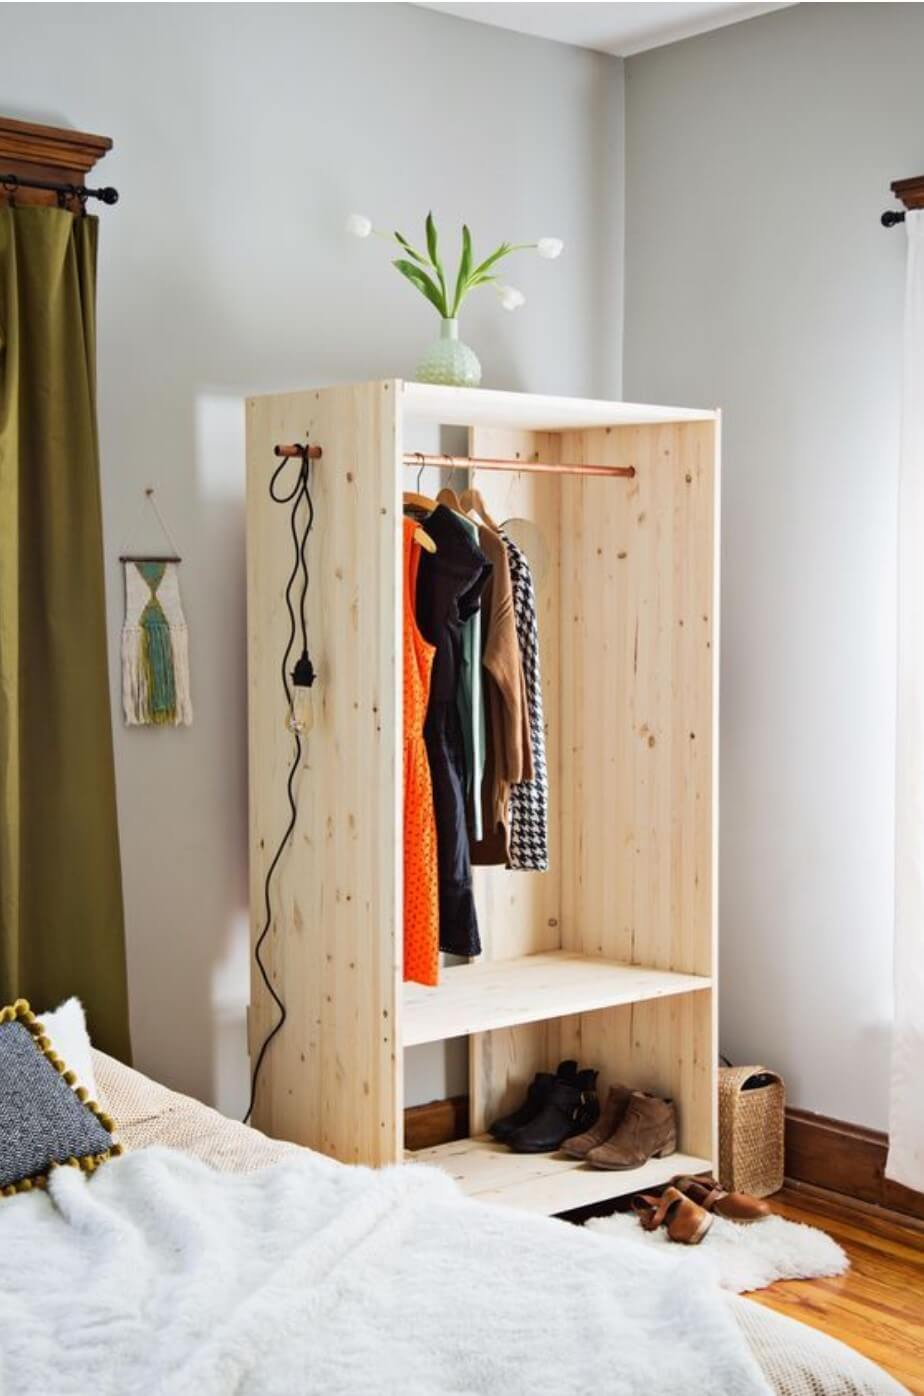 Wooden wardrobe without doors next to a bed, inside a white room